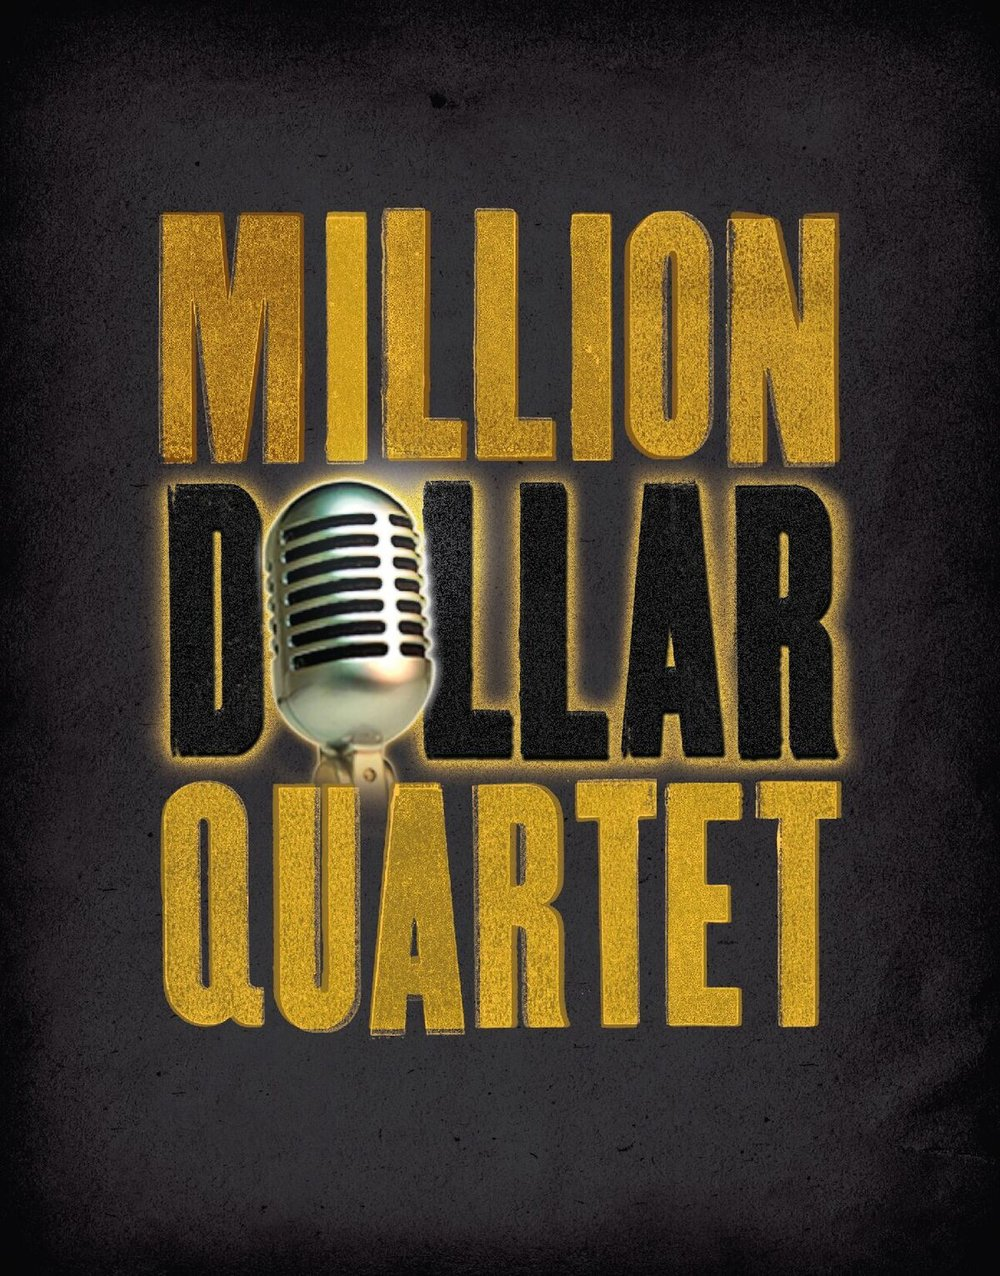 MILLION DOLLAR QUARTET - ART.jpg